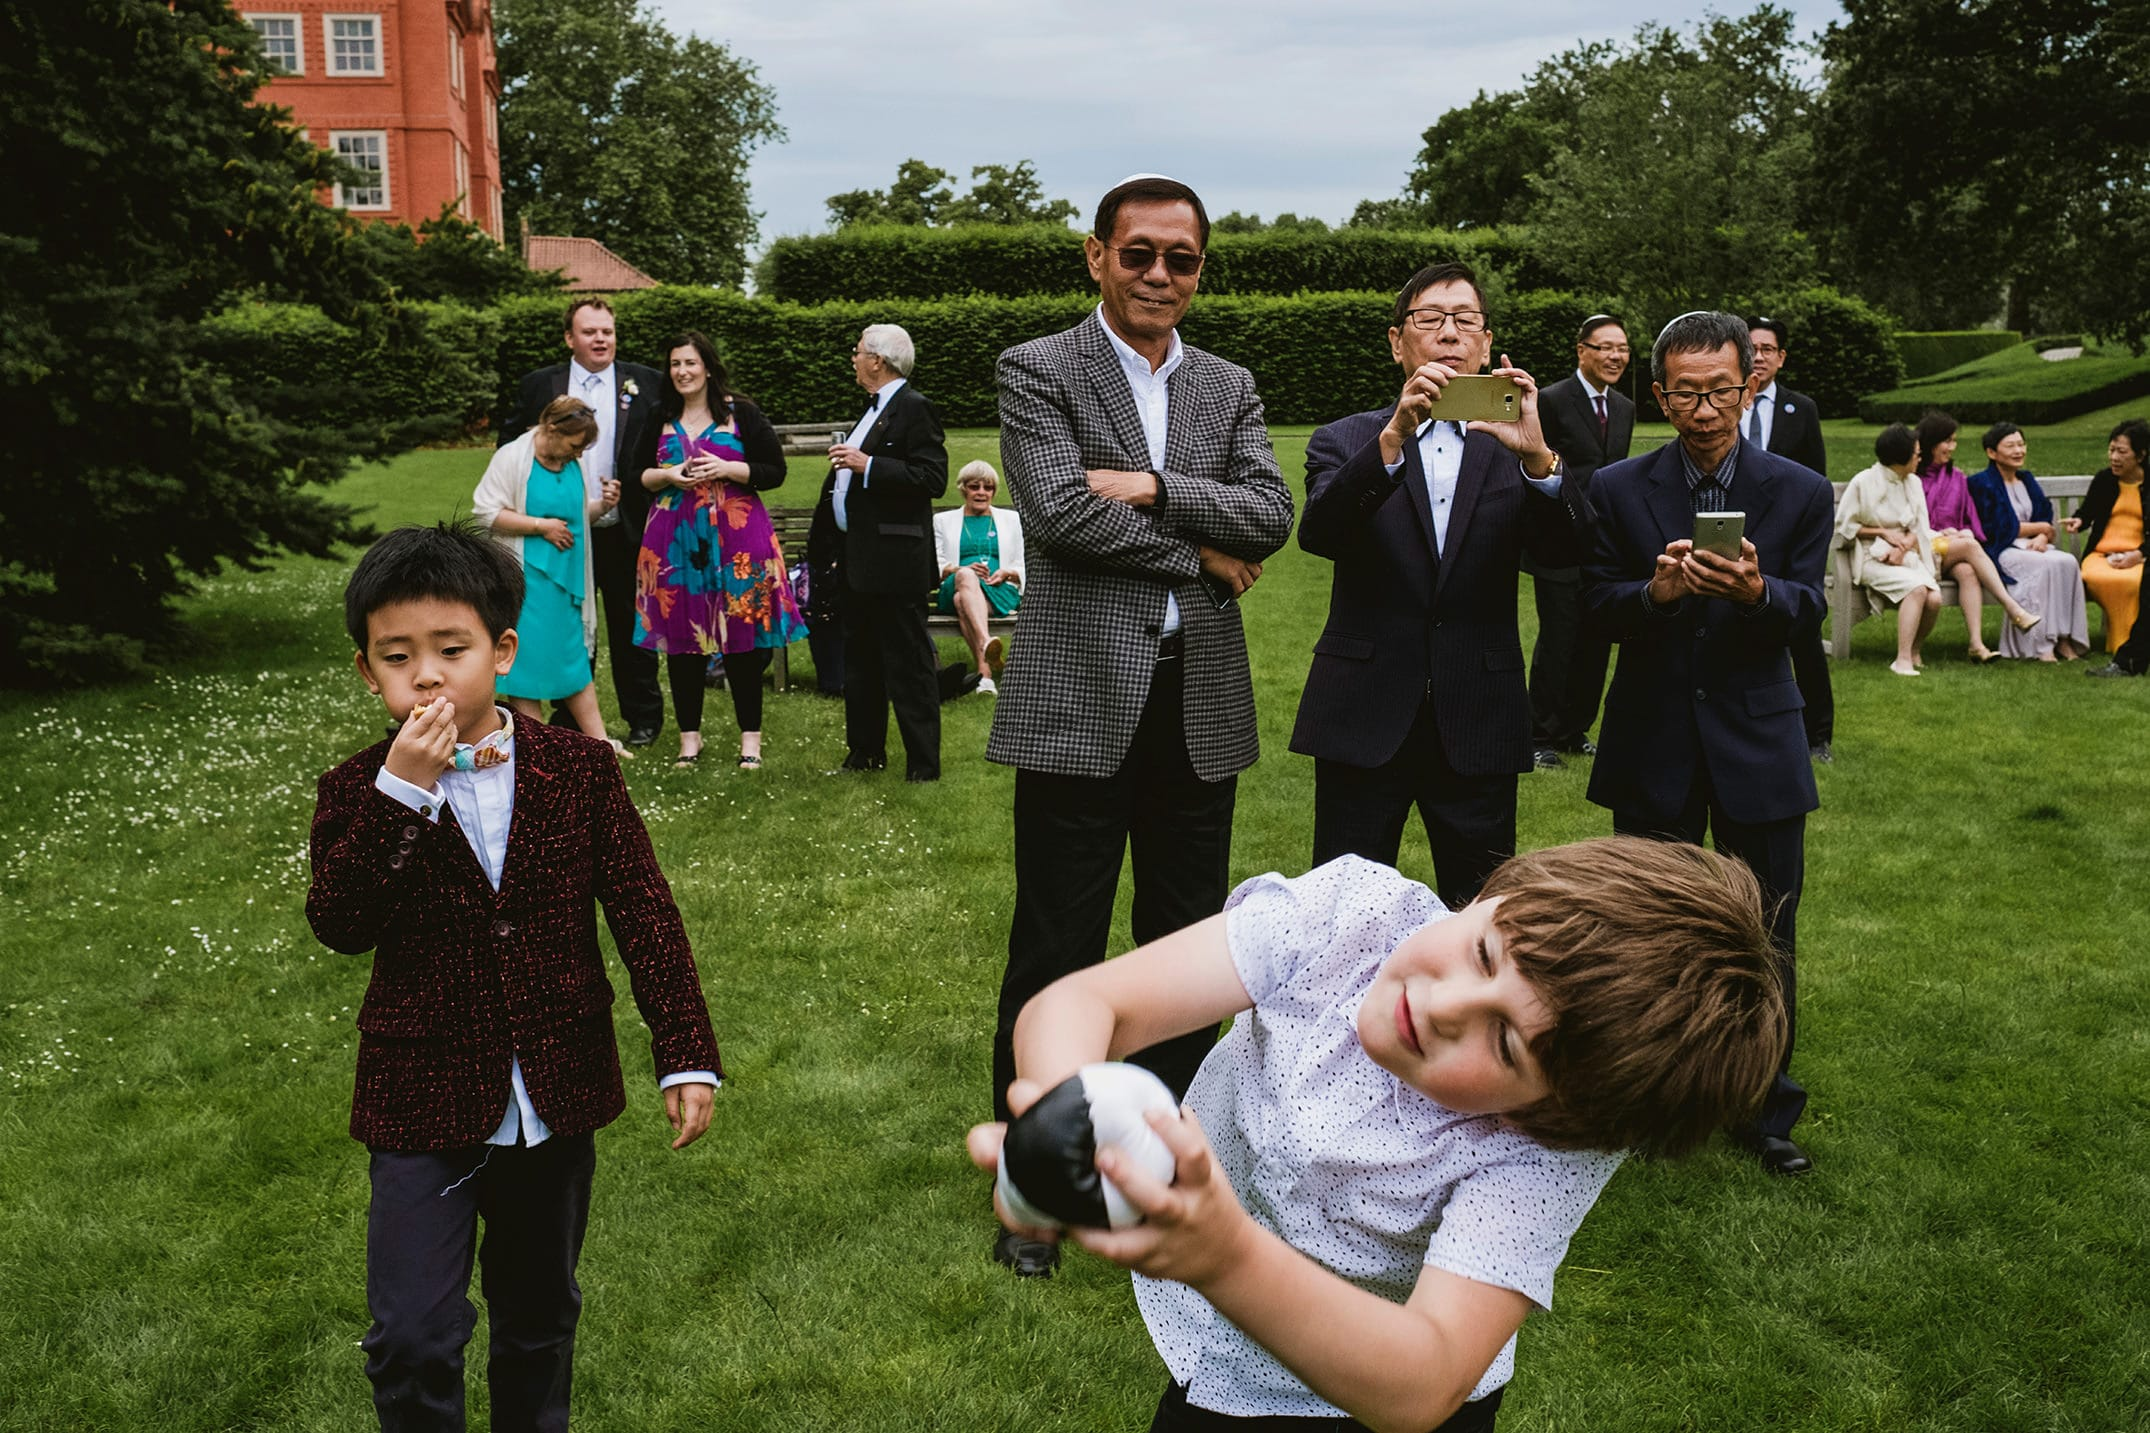 Kew Gardens wedding reception. Guests playing in the garden.